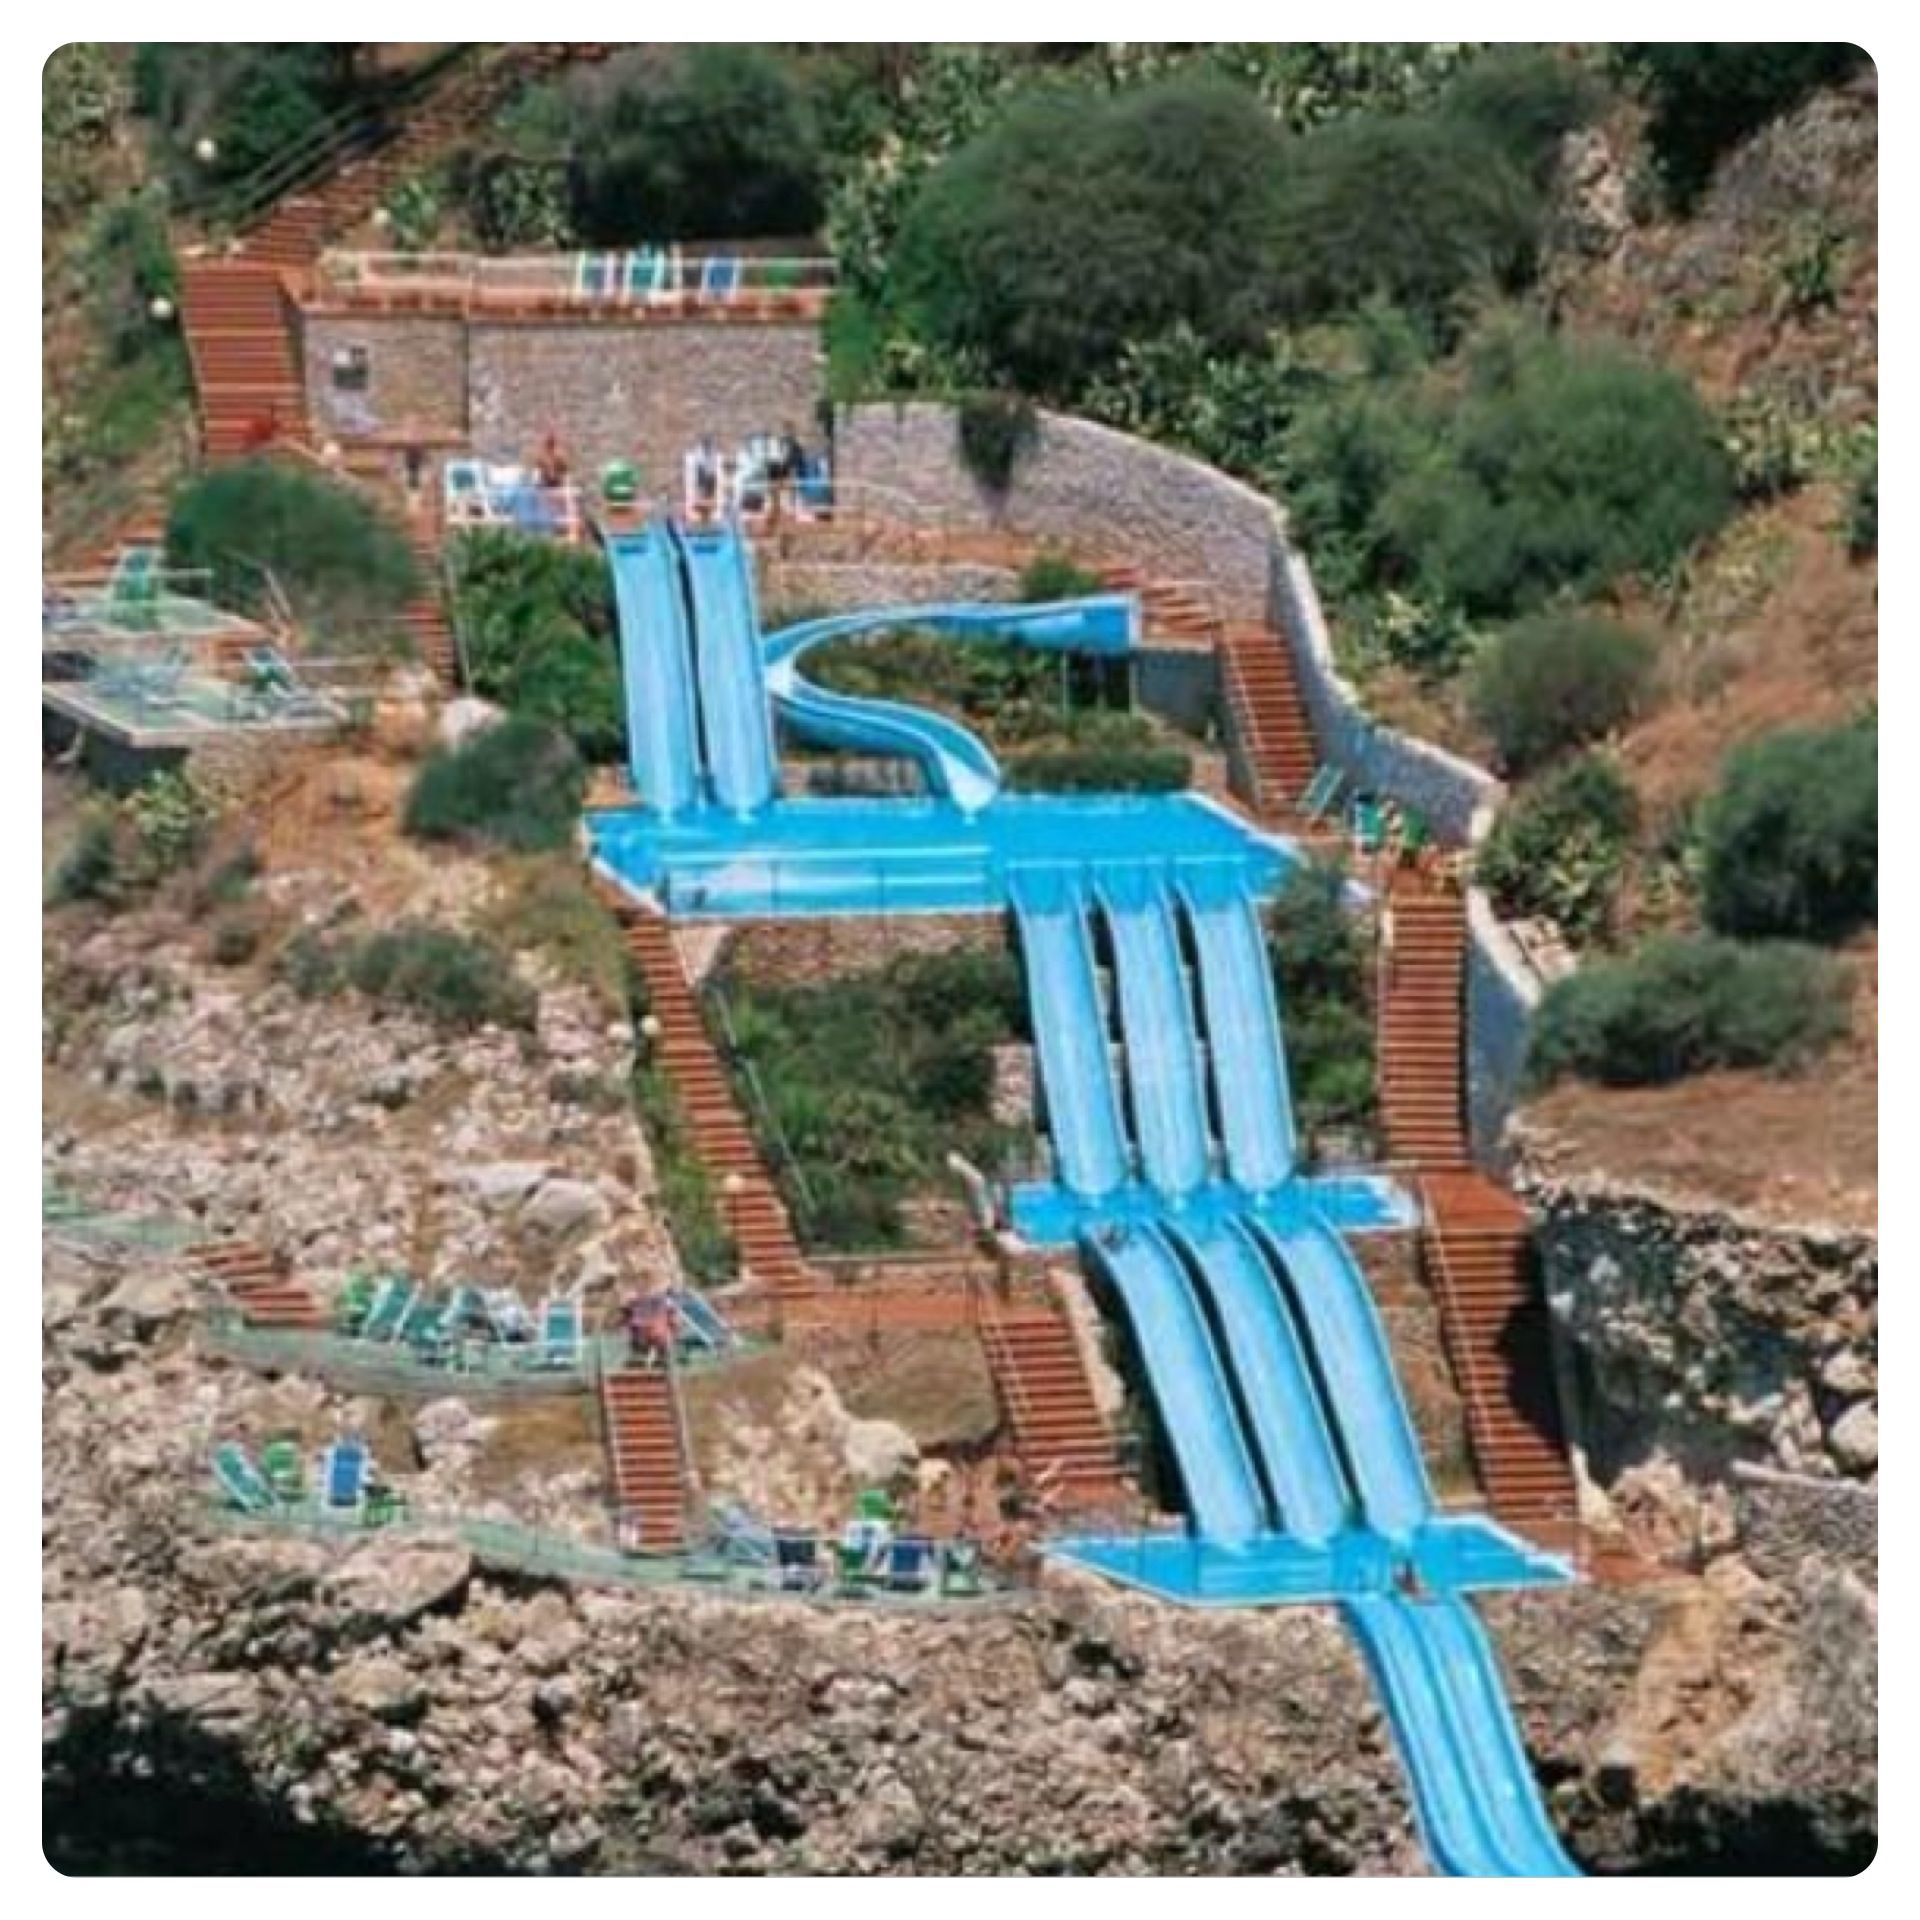 Sicily  Hotel Citta Del Mare  Waterslide Carved Into